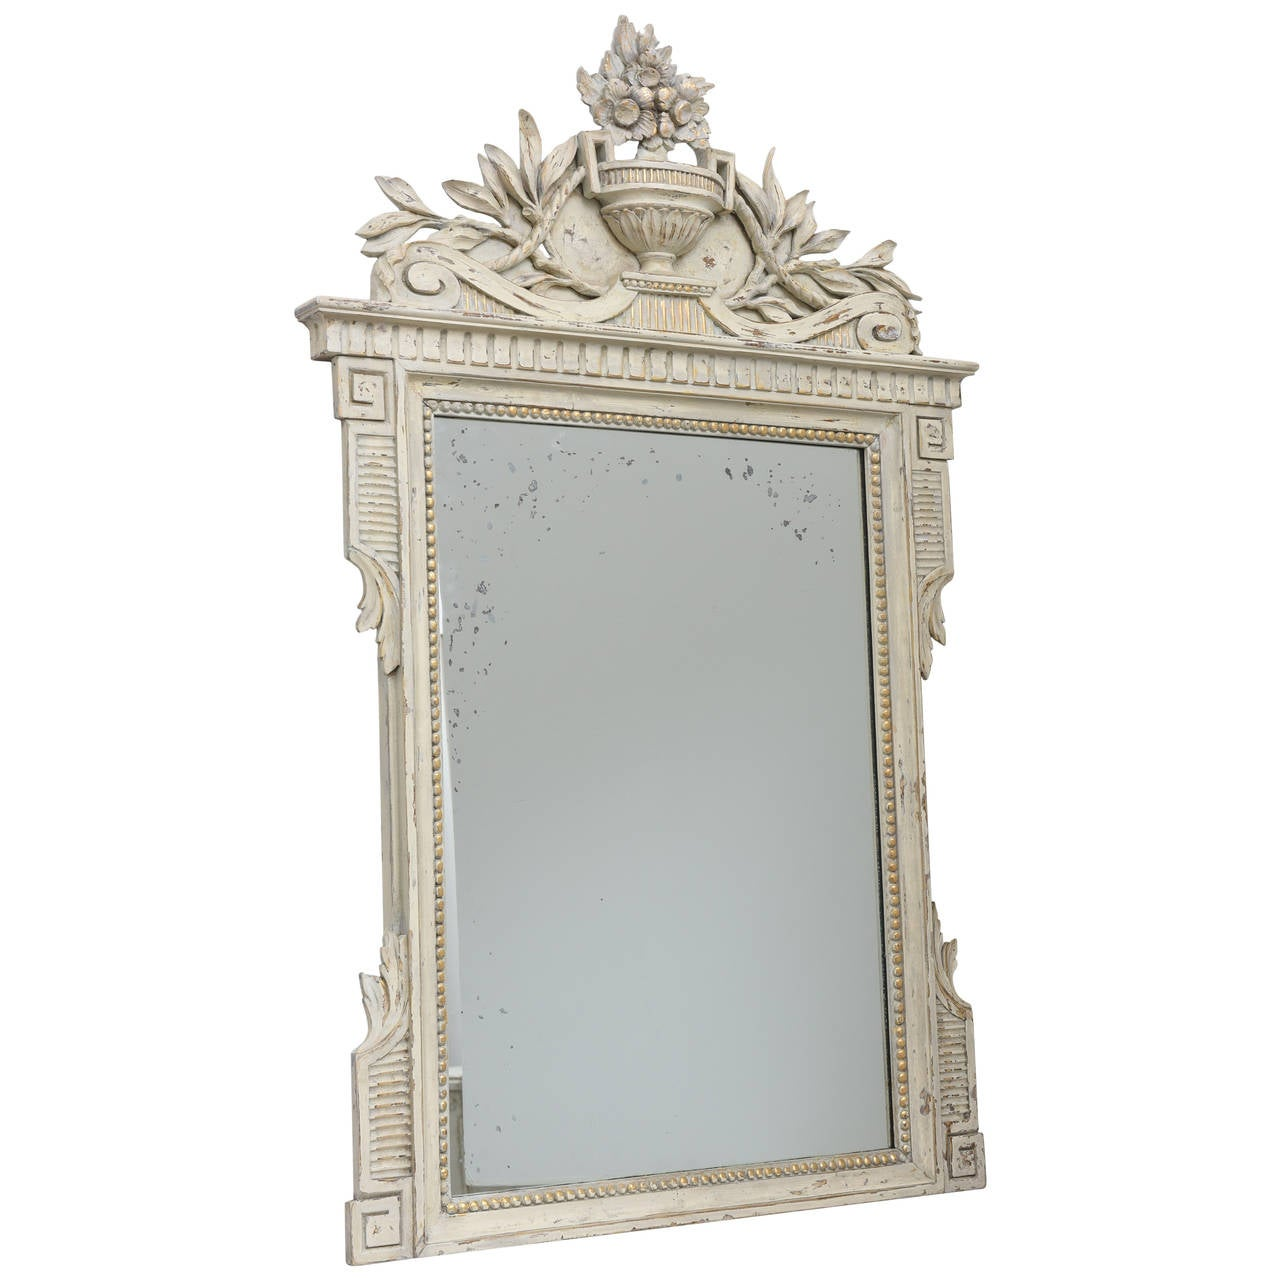 Antique painted gustavian style mirror at 1stdibs for Old style mirror